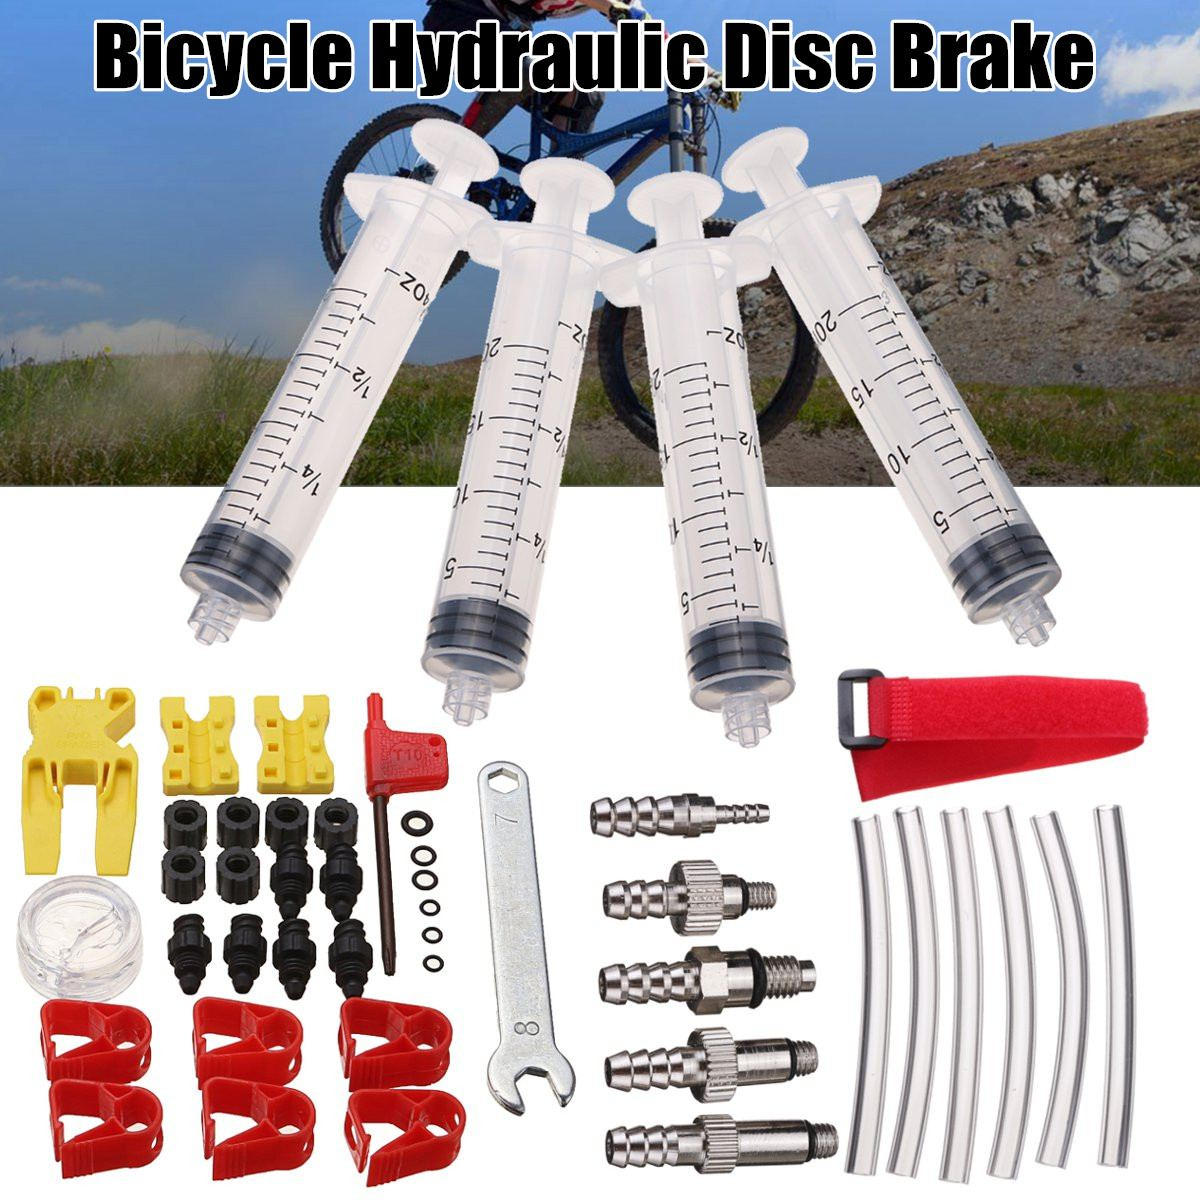 Bicycle Hydraulic Disc Brake Bleed Kit Tool For Shimano TEKTRO MAGURA ZOOM For  AVID Formula DODE JUICY HAYES ELIXIR Bicycle